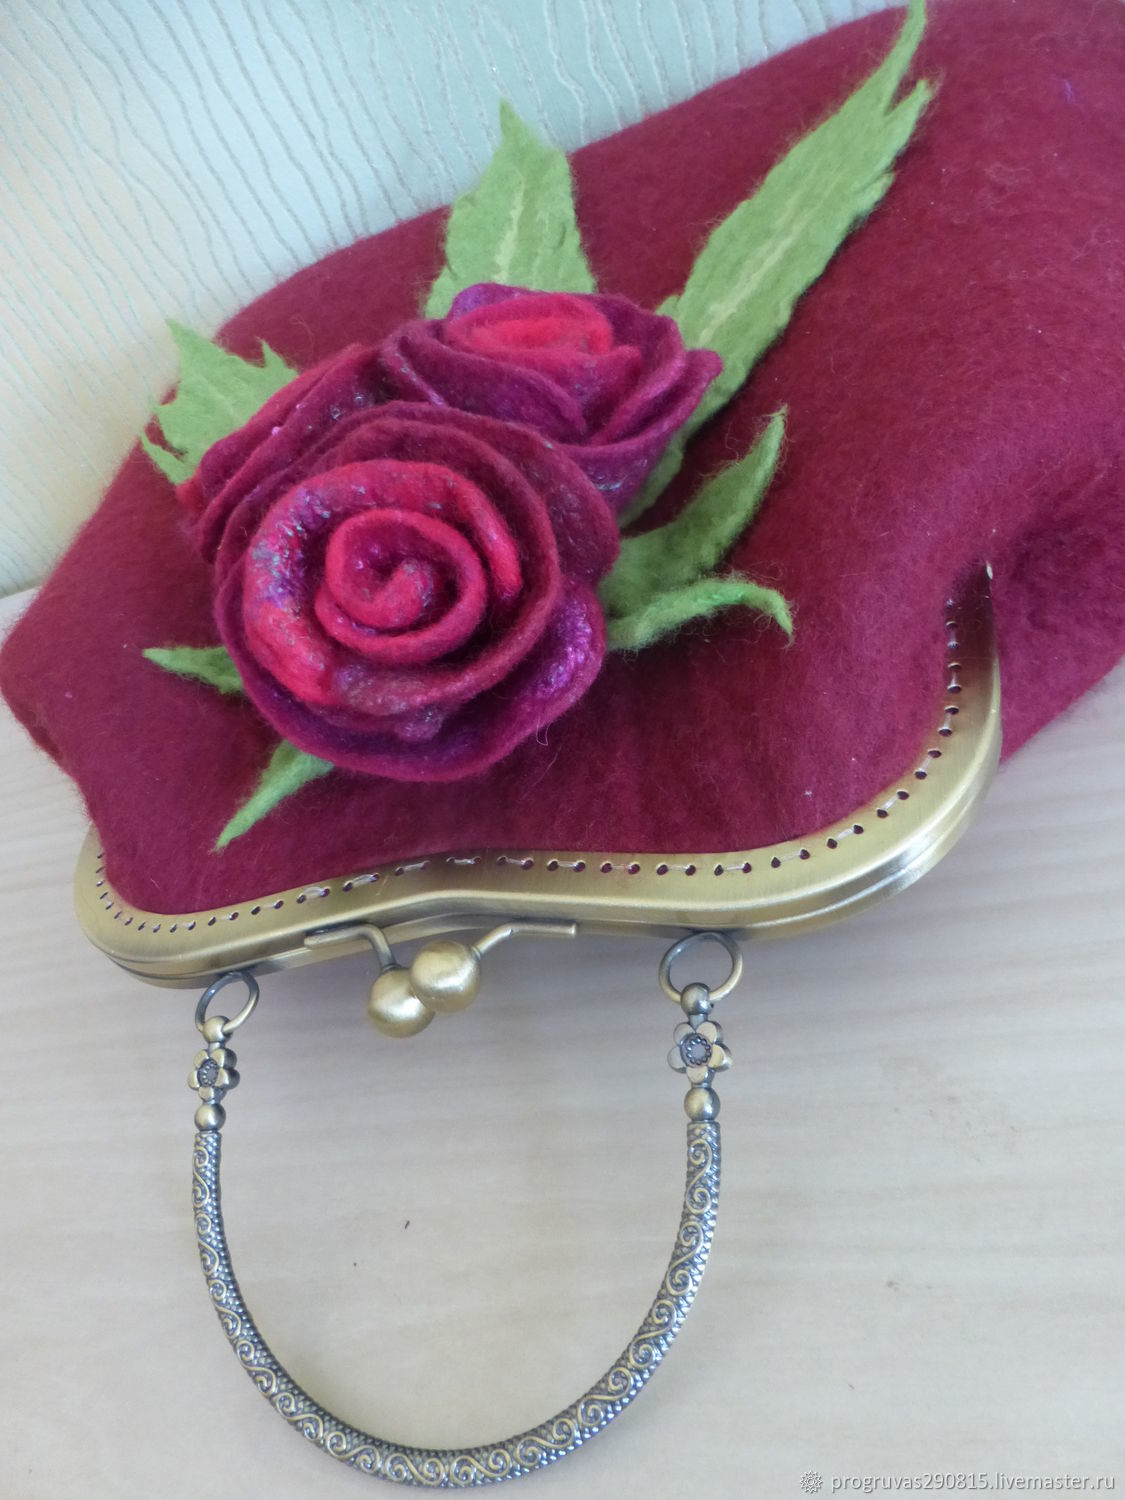 Classic bag: Felted burgundy bag with roses, Classic Bag, Votkinsk,  Фото №1